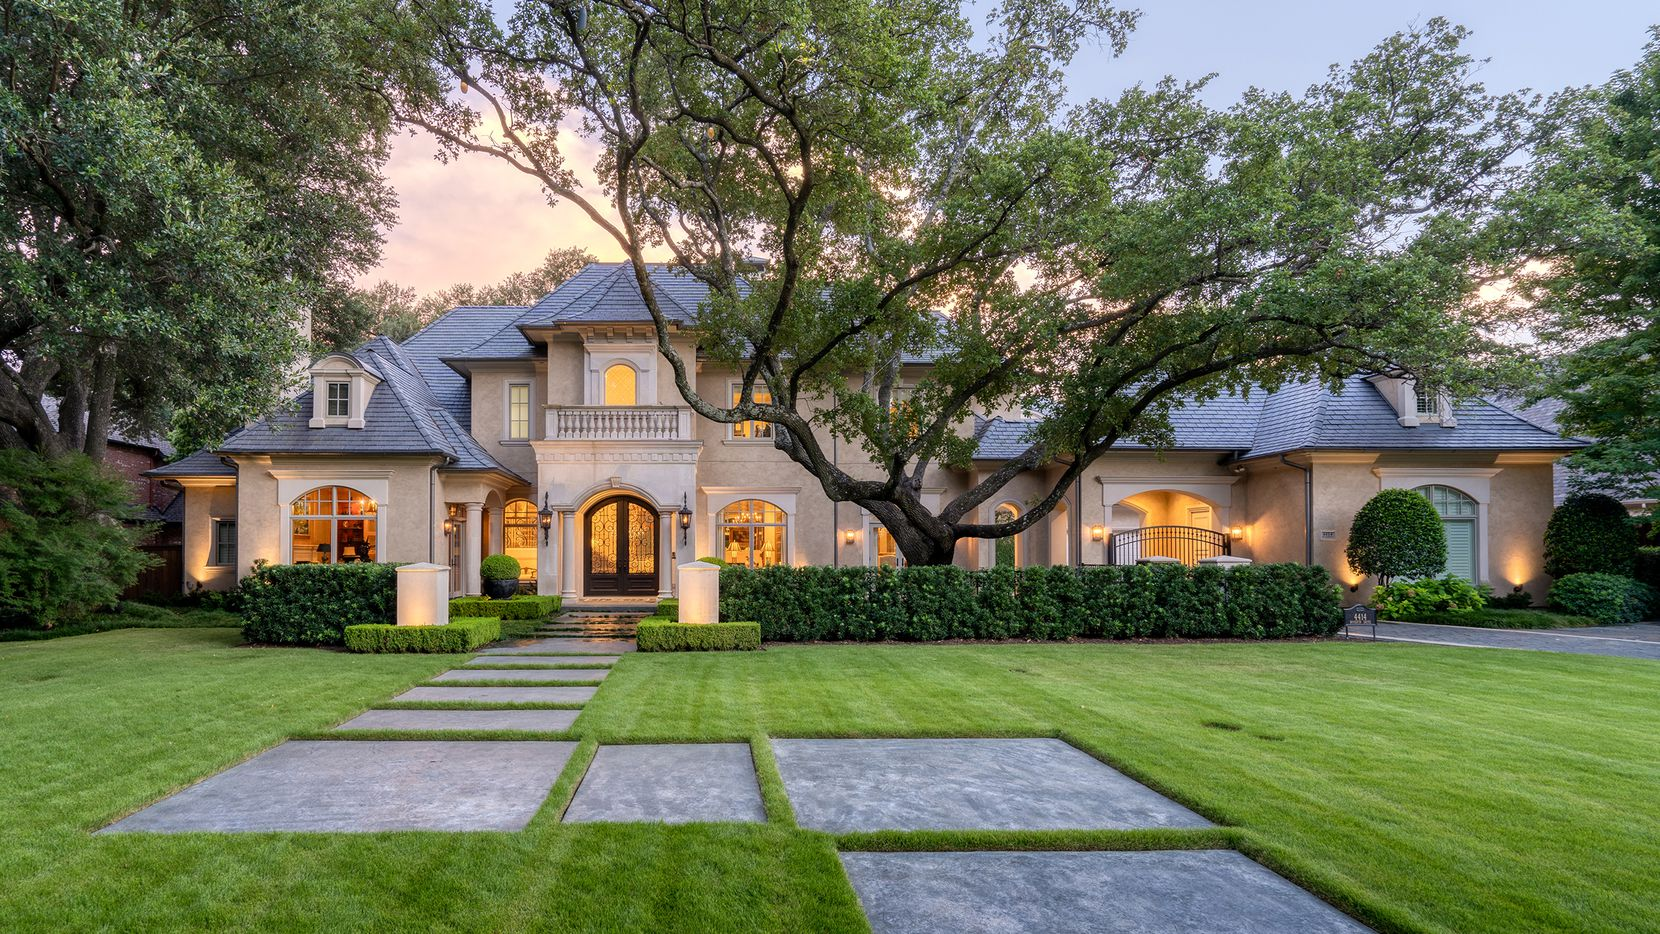 The home at 4414 Woodfin Drive in Preston Hollow has four bedrooms and a resort-like outdoor living space.